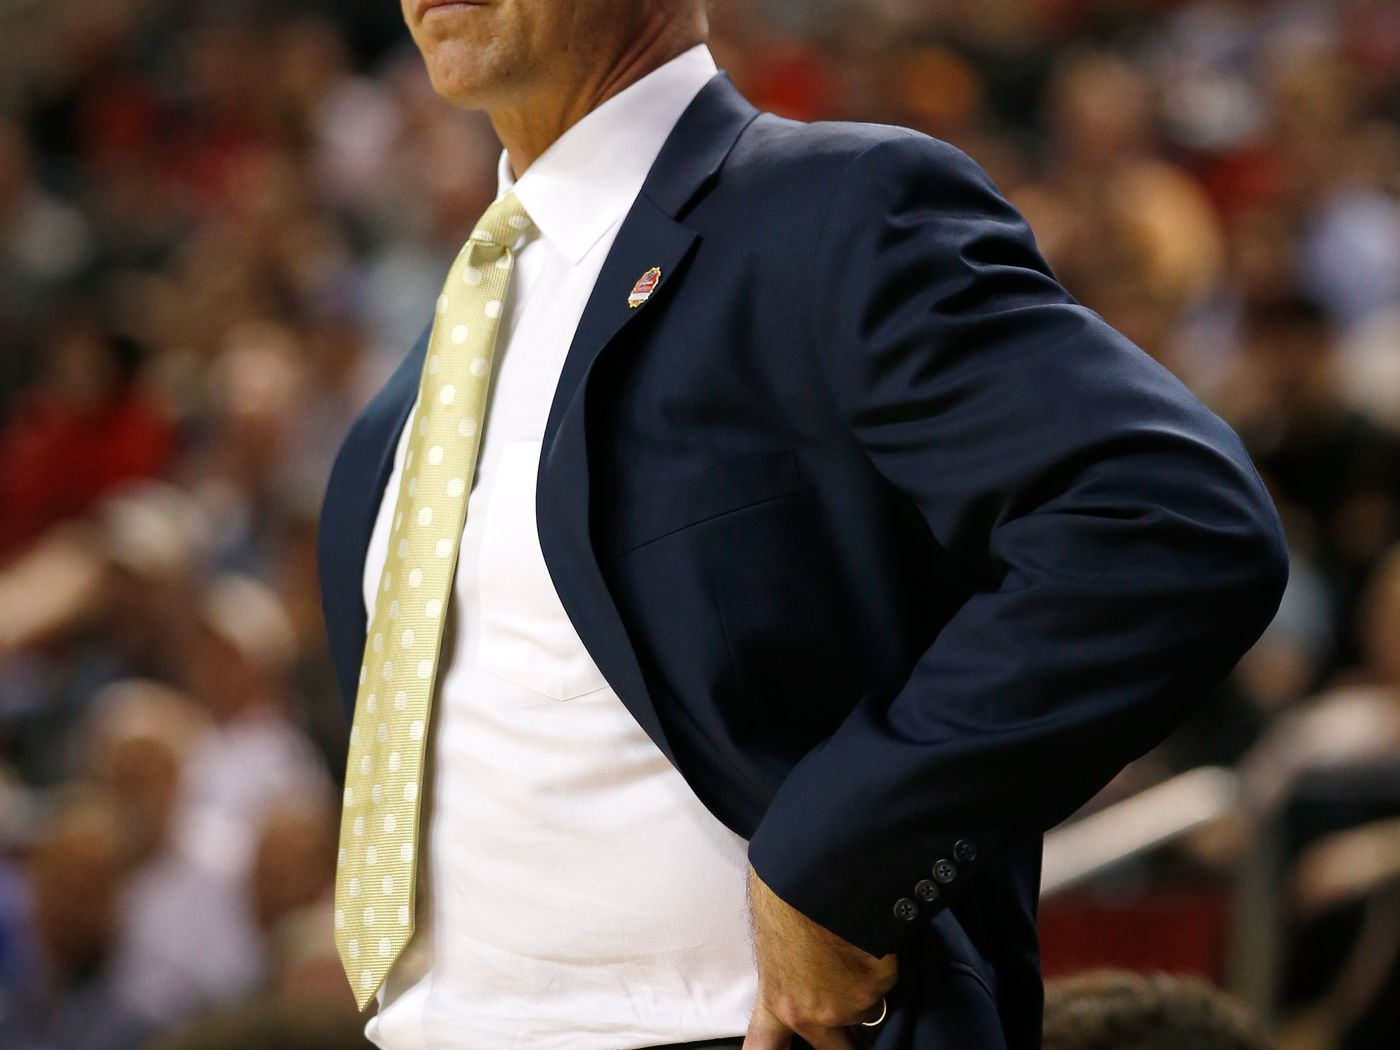 The education of UC-Irvine coach Russell Turner on gay